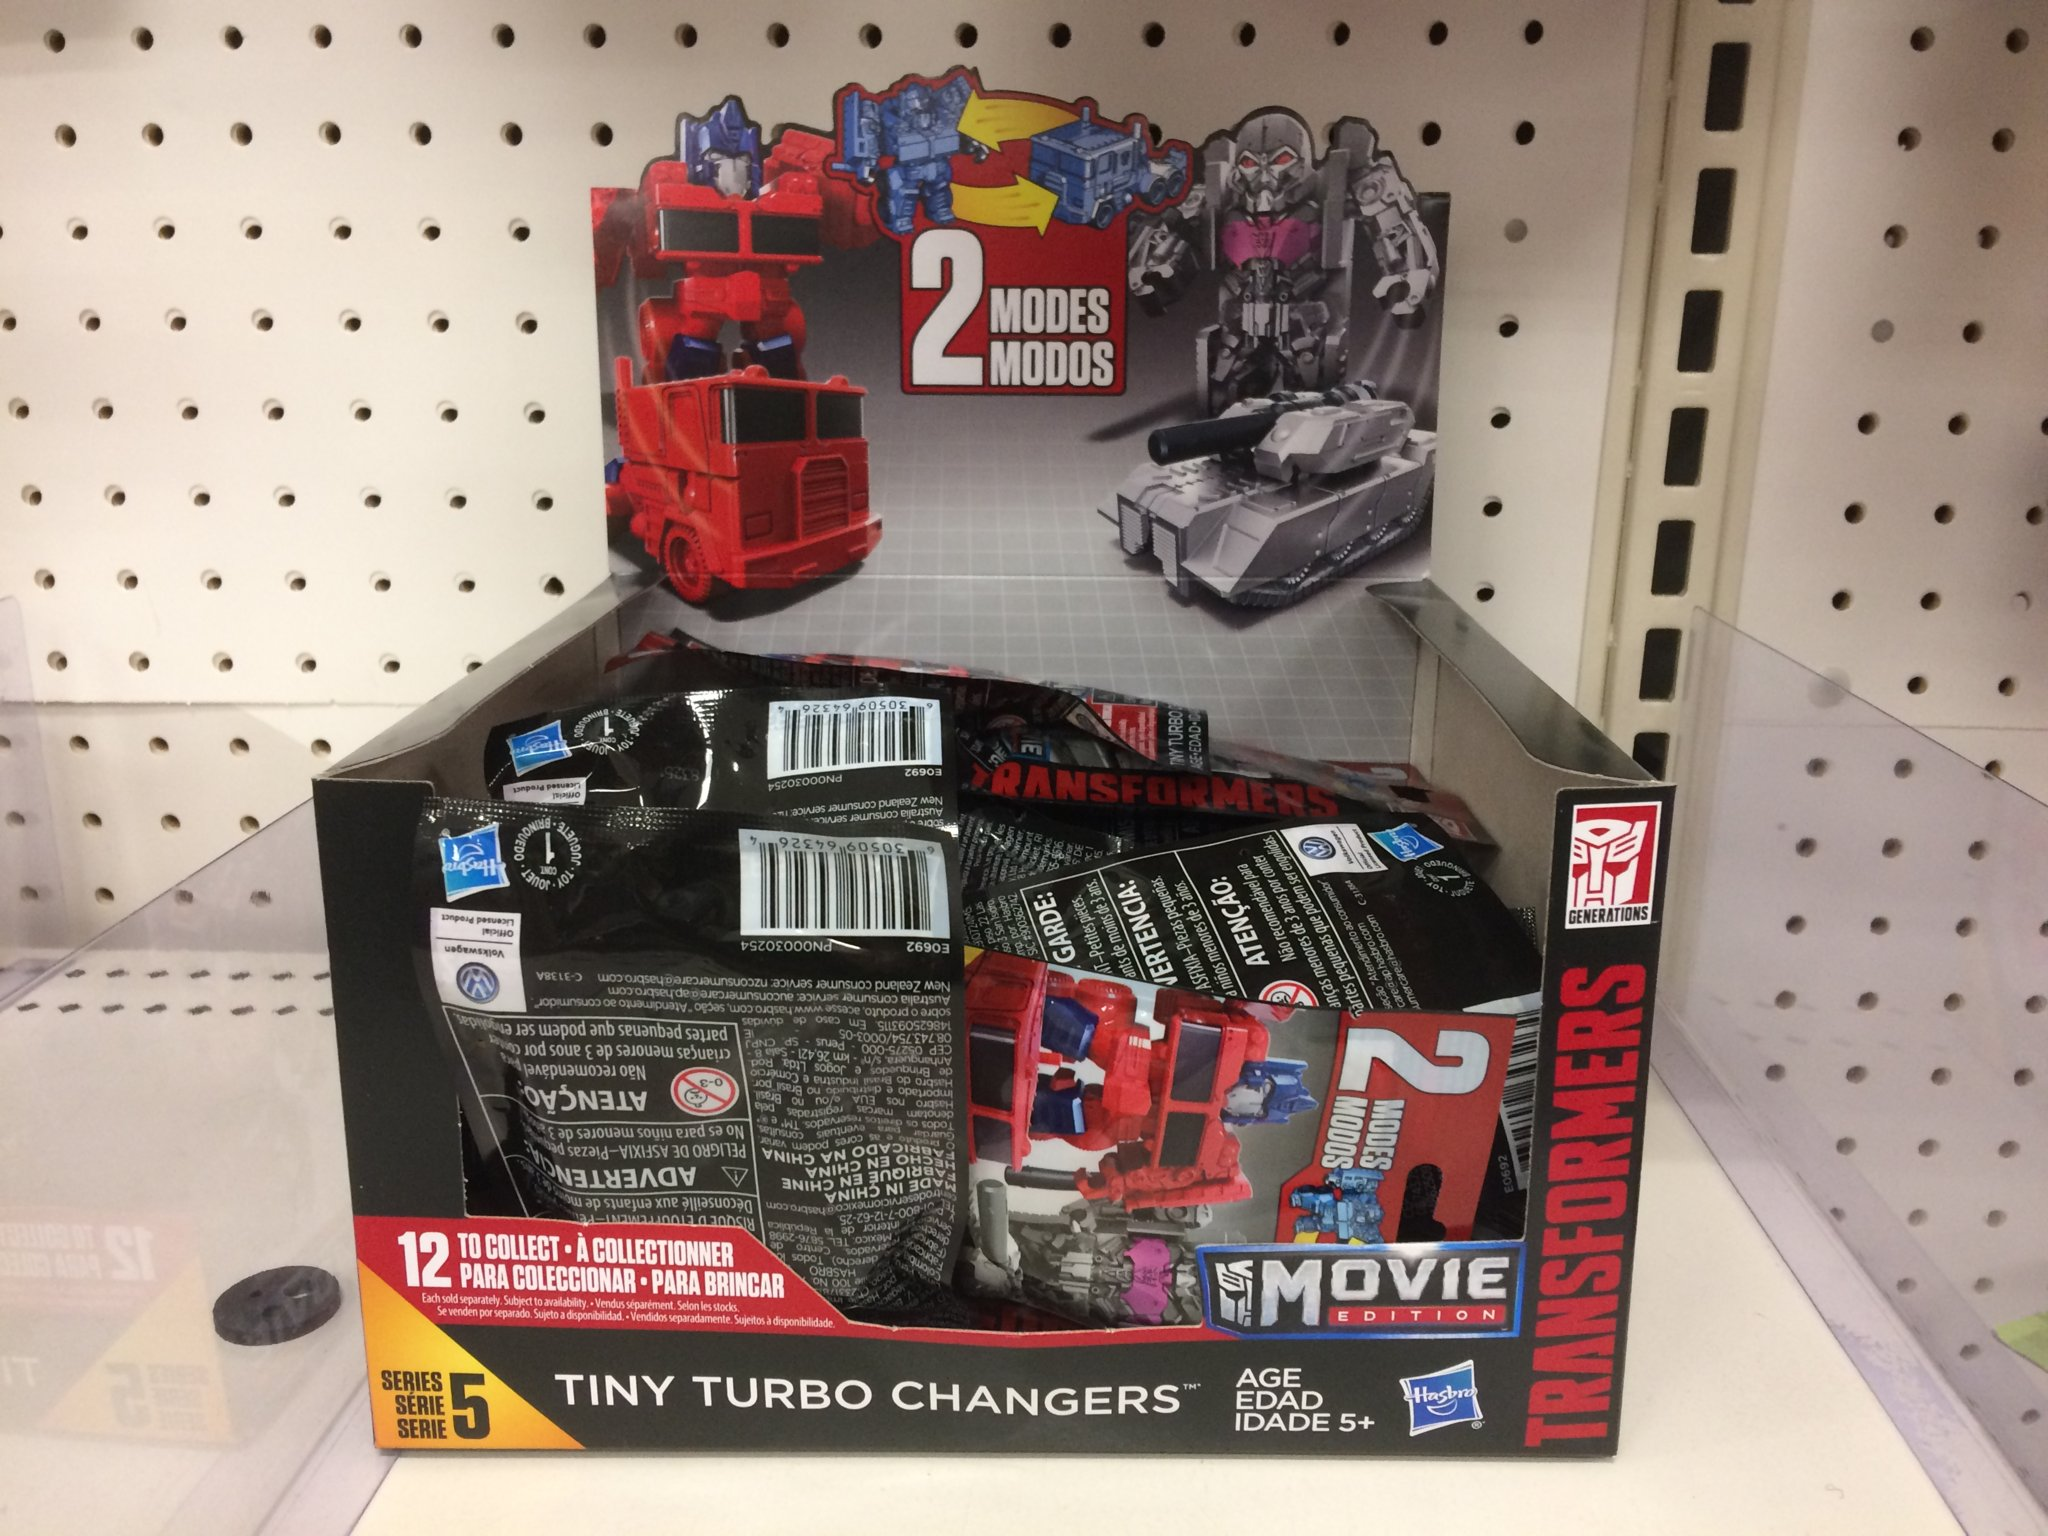 Tiny Turbo Changers Series 5 Identification Codes